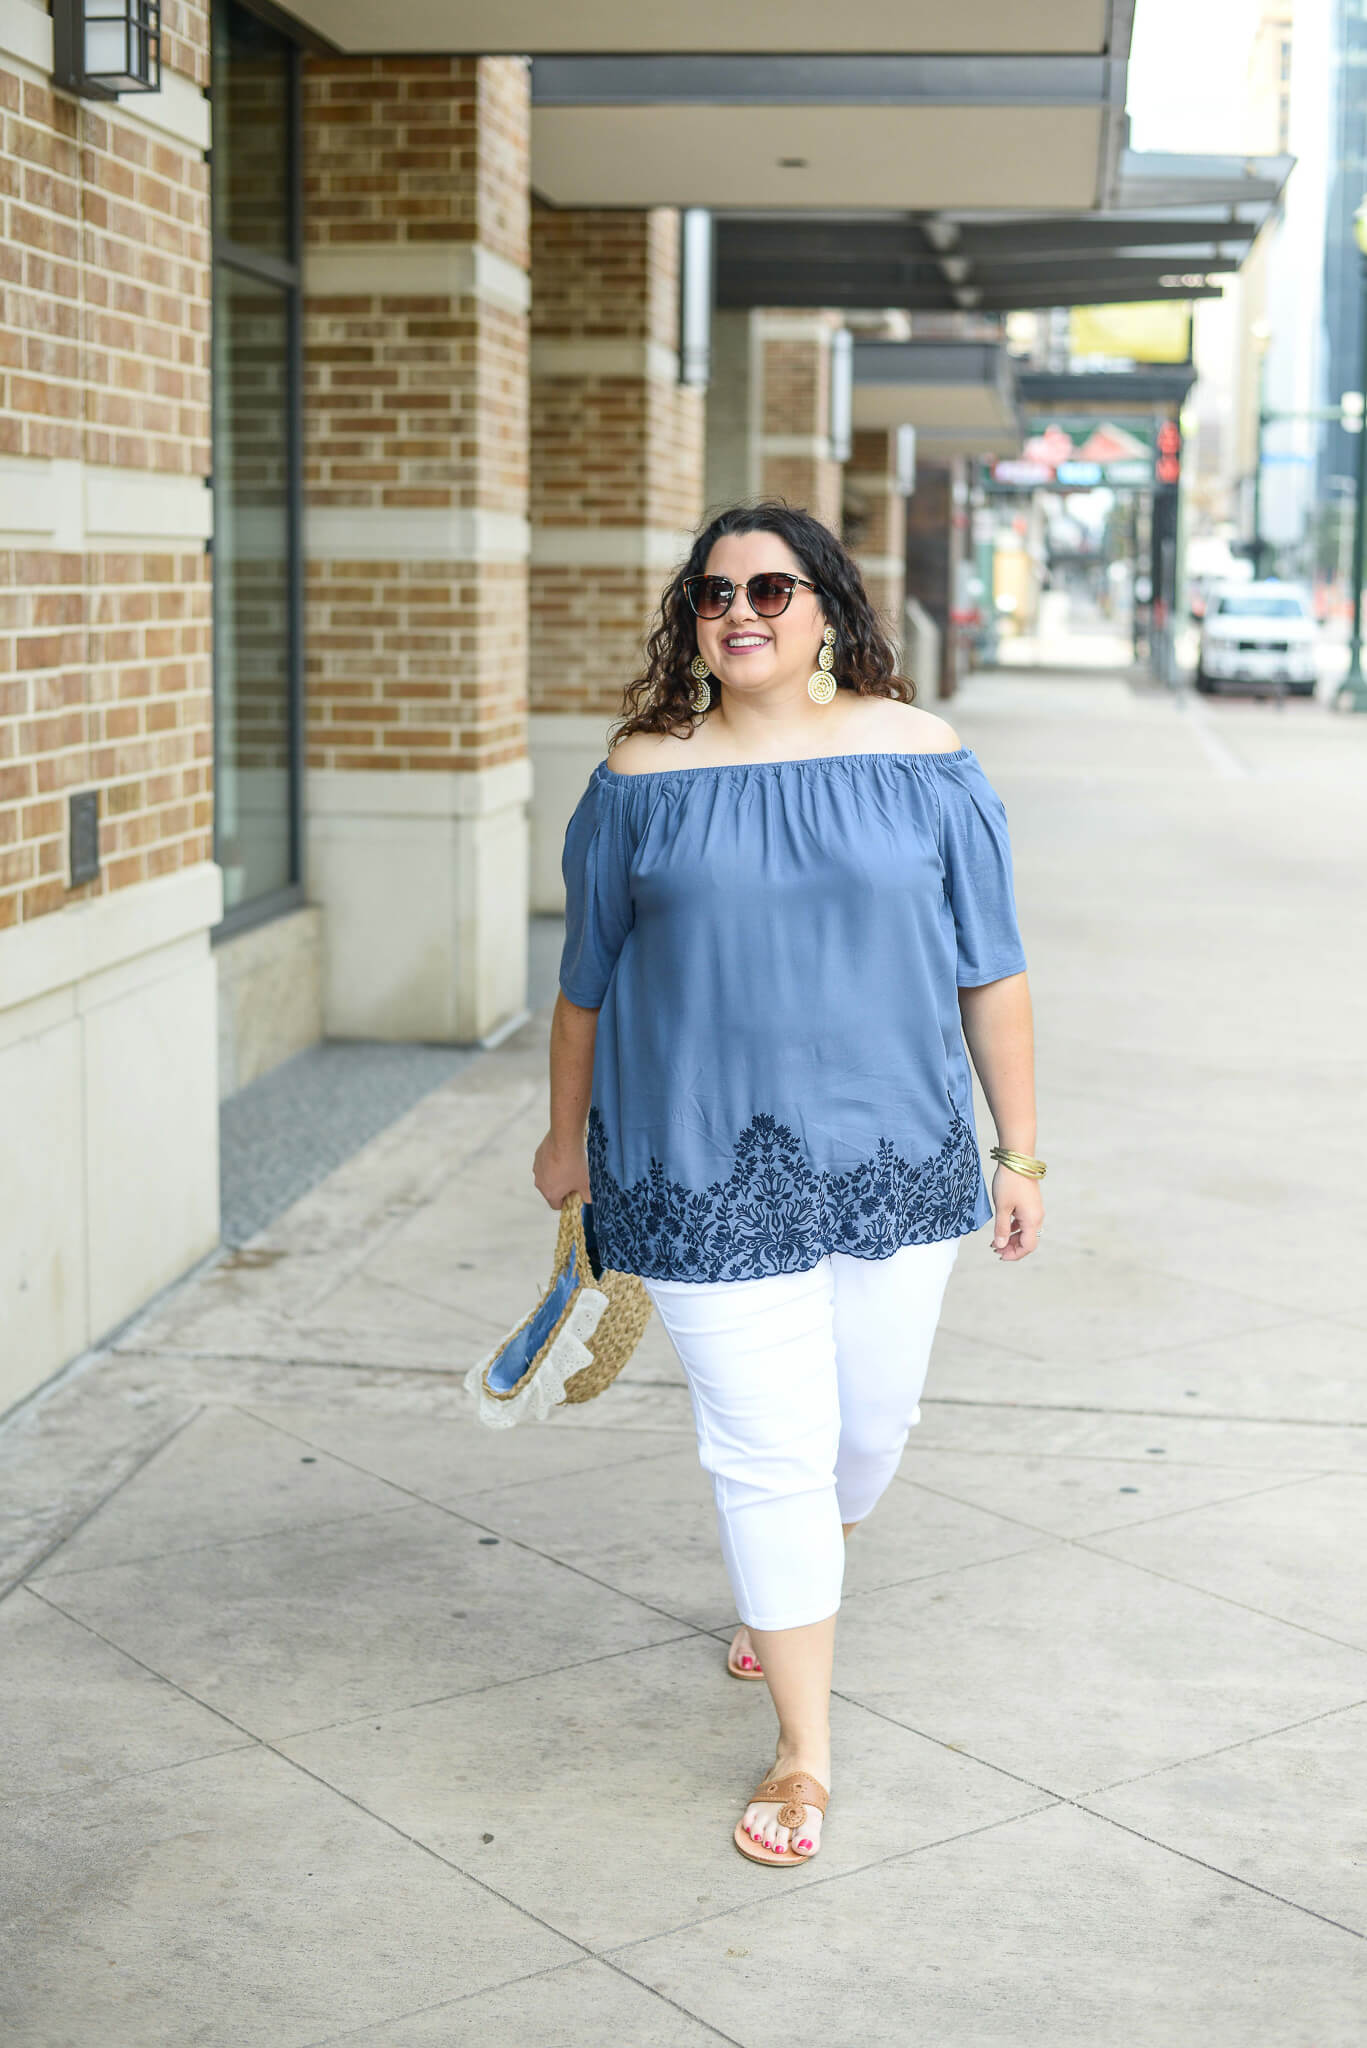 Plus size all around brand, Just My Size, is celebrating their 35th birthday this year!